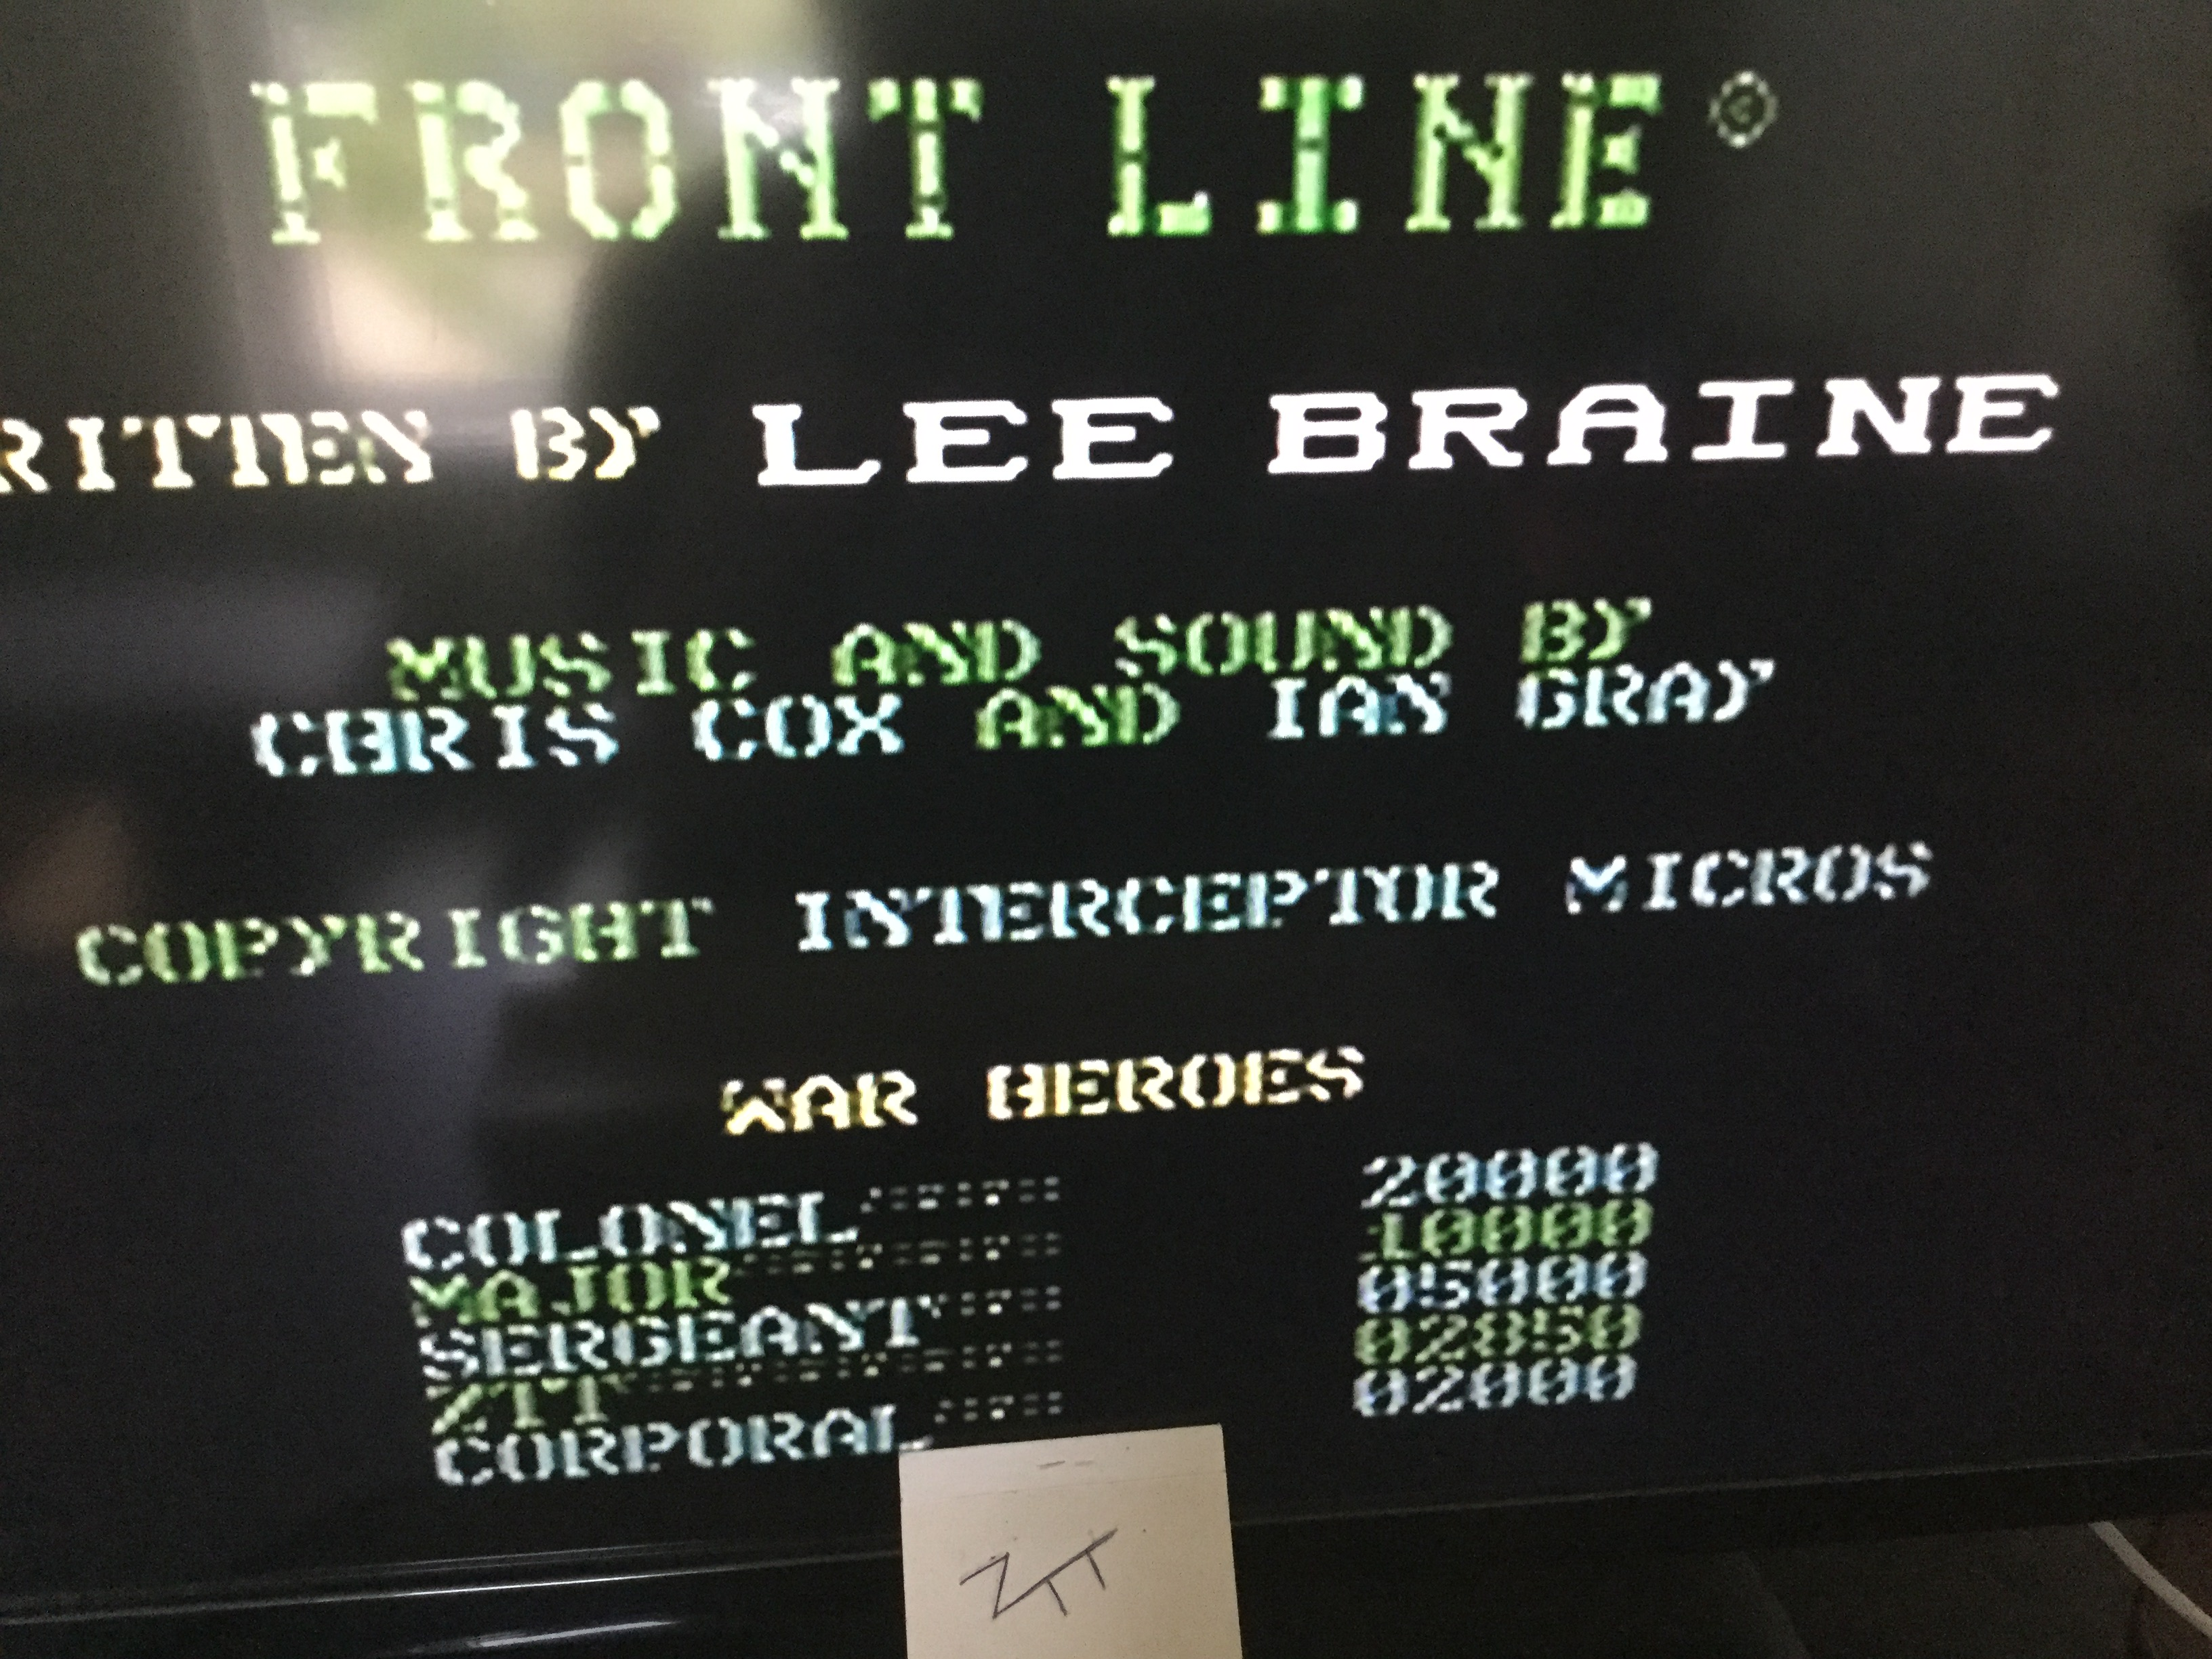 Frankie: Front Line [Interceptor Micros] (Commodore 64) 2,850 points on 2019-06-05 11:44:04